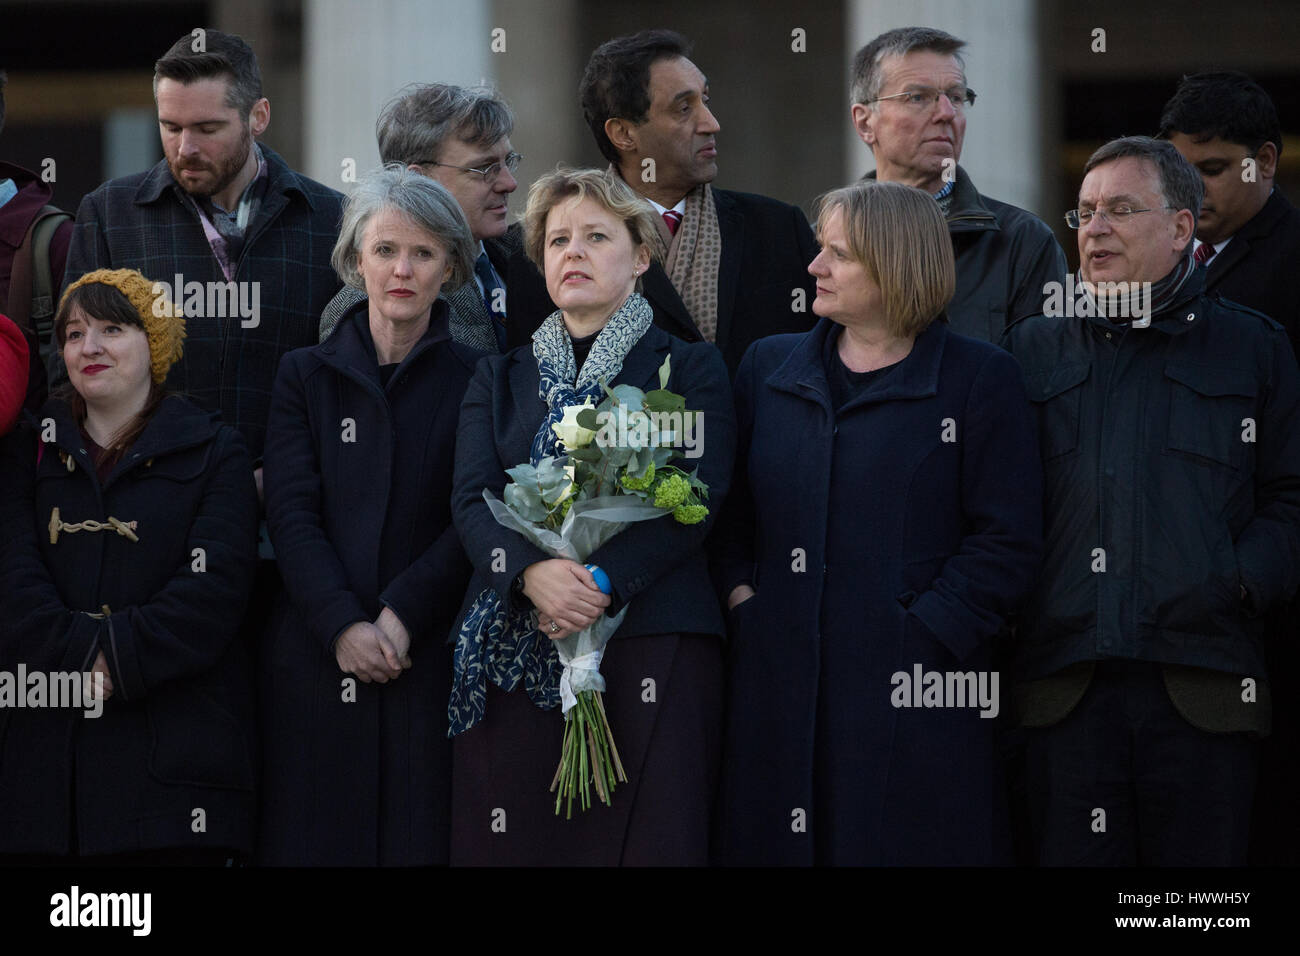 London, UK. 23rd March, 2017. Dignitaries including London Assembly Members assemble in Trafalgar Square for a vigil - Stock Image